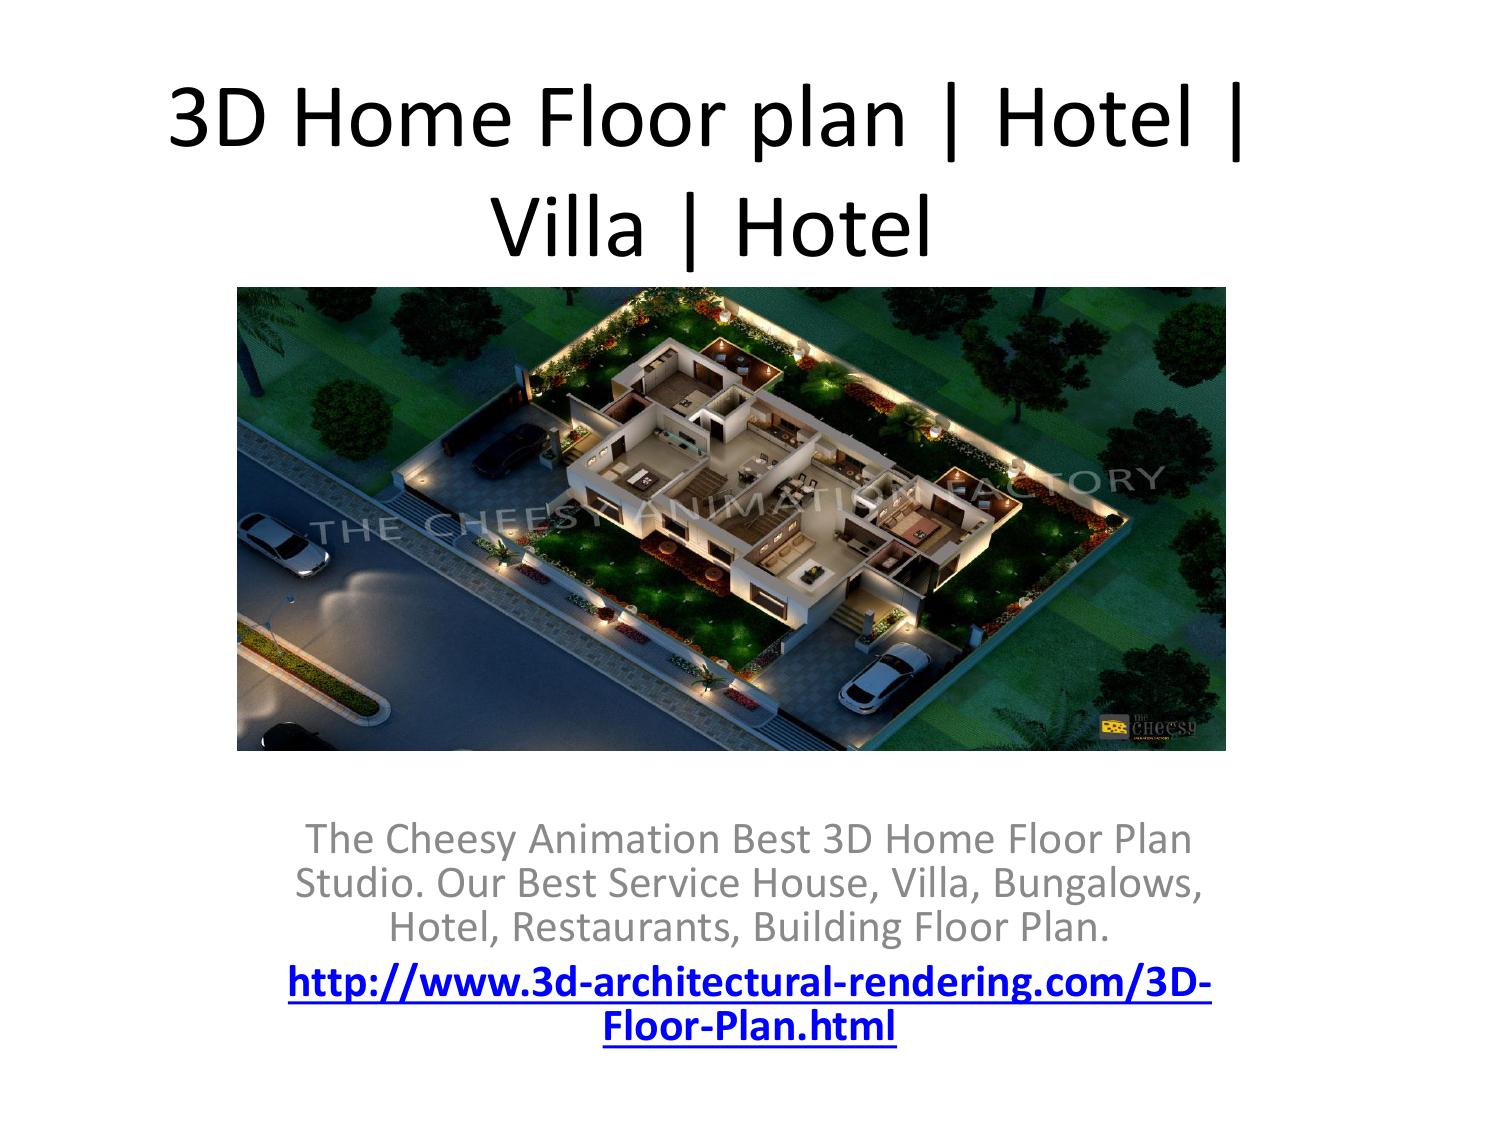 3D Home Floor plan | Hotel | Villa | Hotel by 3D Walkthrough Service Top House Floor Plans Html on modern house plans, house site plan, simple house plans, luxury home plans, small house plans, 2 story house plans, craftsman house plans, big luxury house plans, house exterior, house layout, house schematics, residential house plans, mediterranean house plans, colonial house plans, traditional house plans, house design, duplex house plans, house blueprints, bungalow house plans, country house plans,